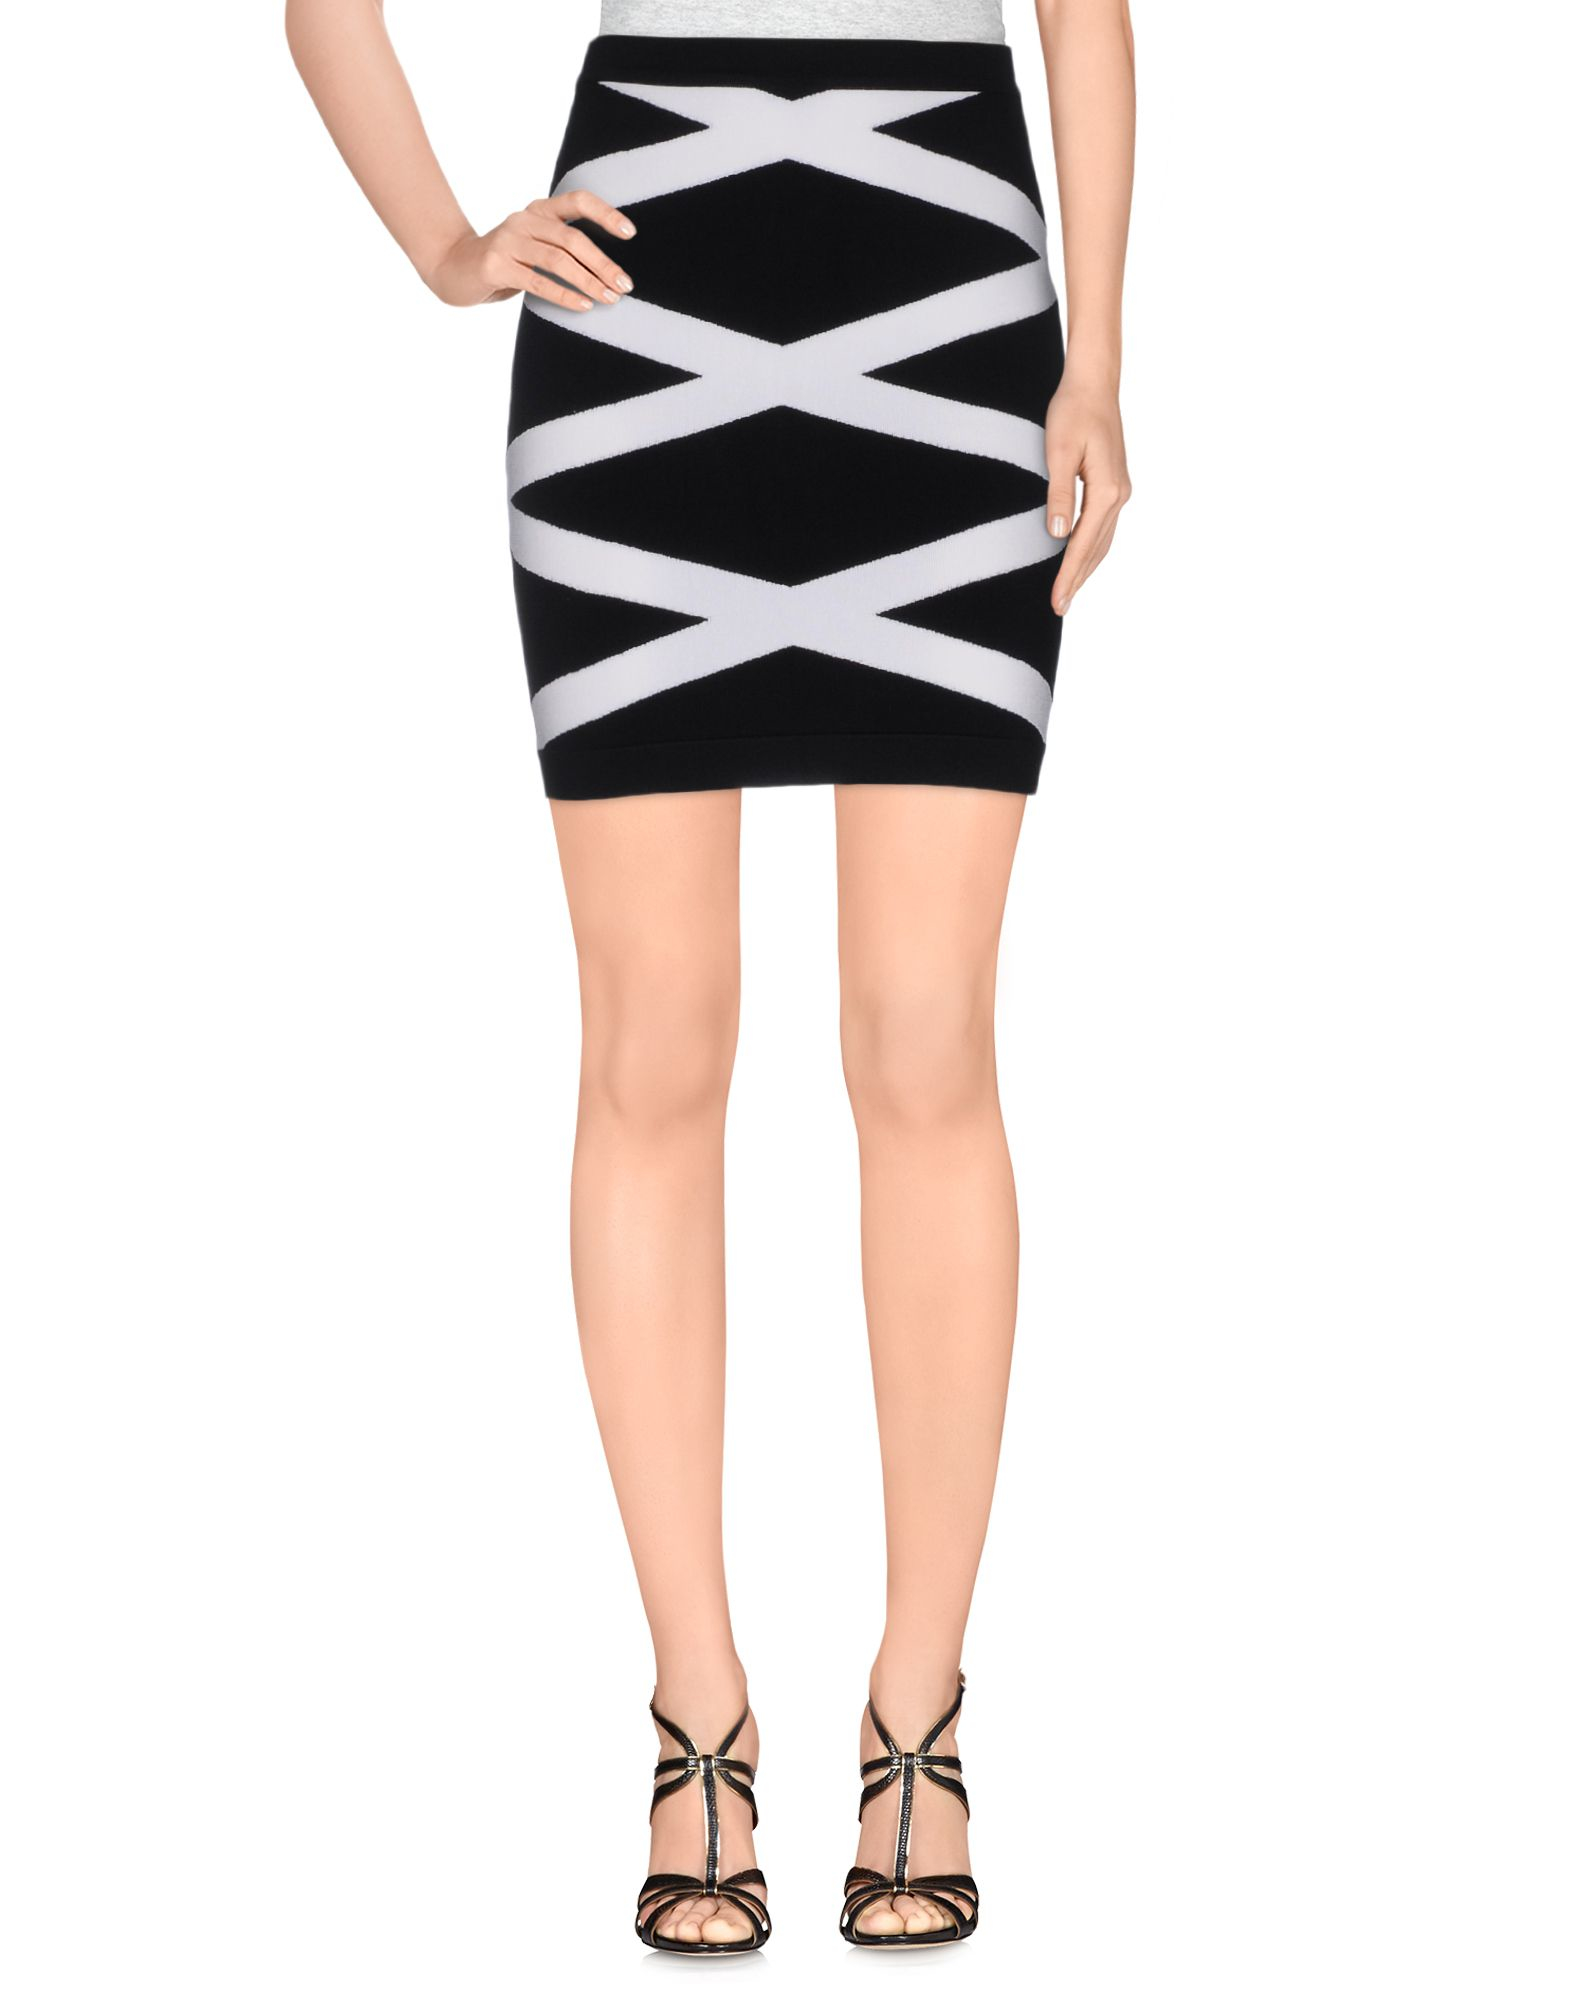 Women's Balmain Skirts There seems to be very little that Balmain can't conquer in the fashion world, from gorgeous clutches through to statement jumpsuits and iconic leather shorts. The brand leads the fashion world from the front and, as a result, is one of the best loved of all the global labels.